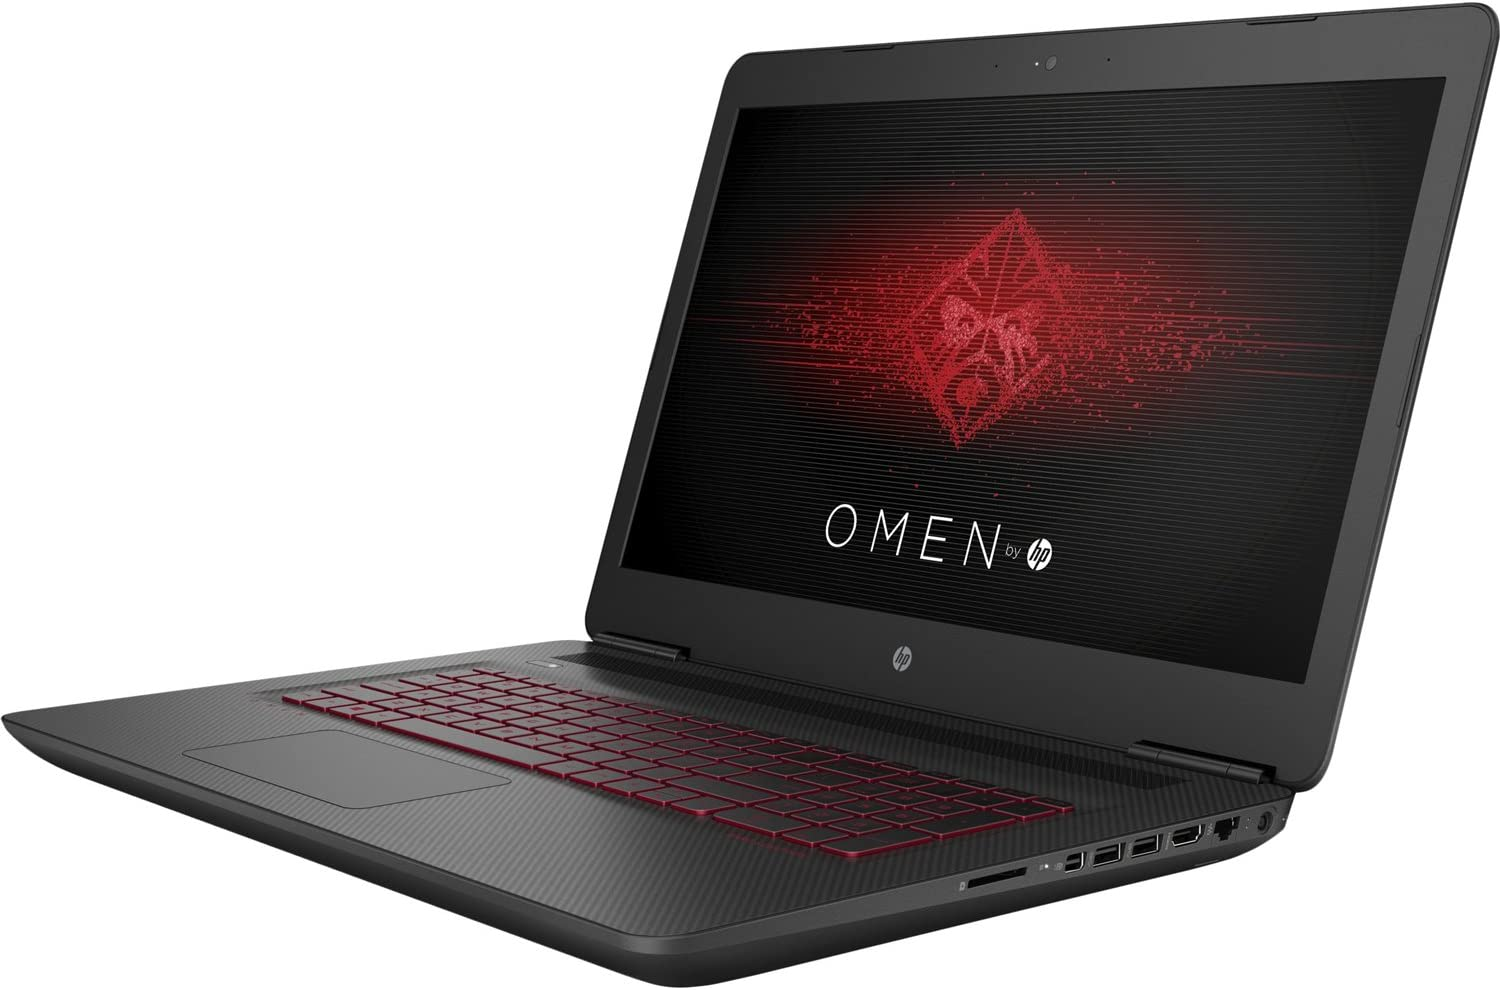 HP OMEN LAPTOP 17-W220NR;WIN10 HOME,INTEL CORE I7-7700HQ,12GB DDR4,NVIDIA GEFORC